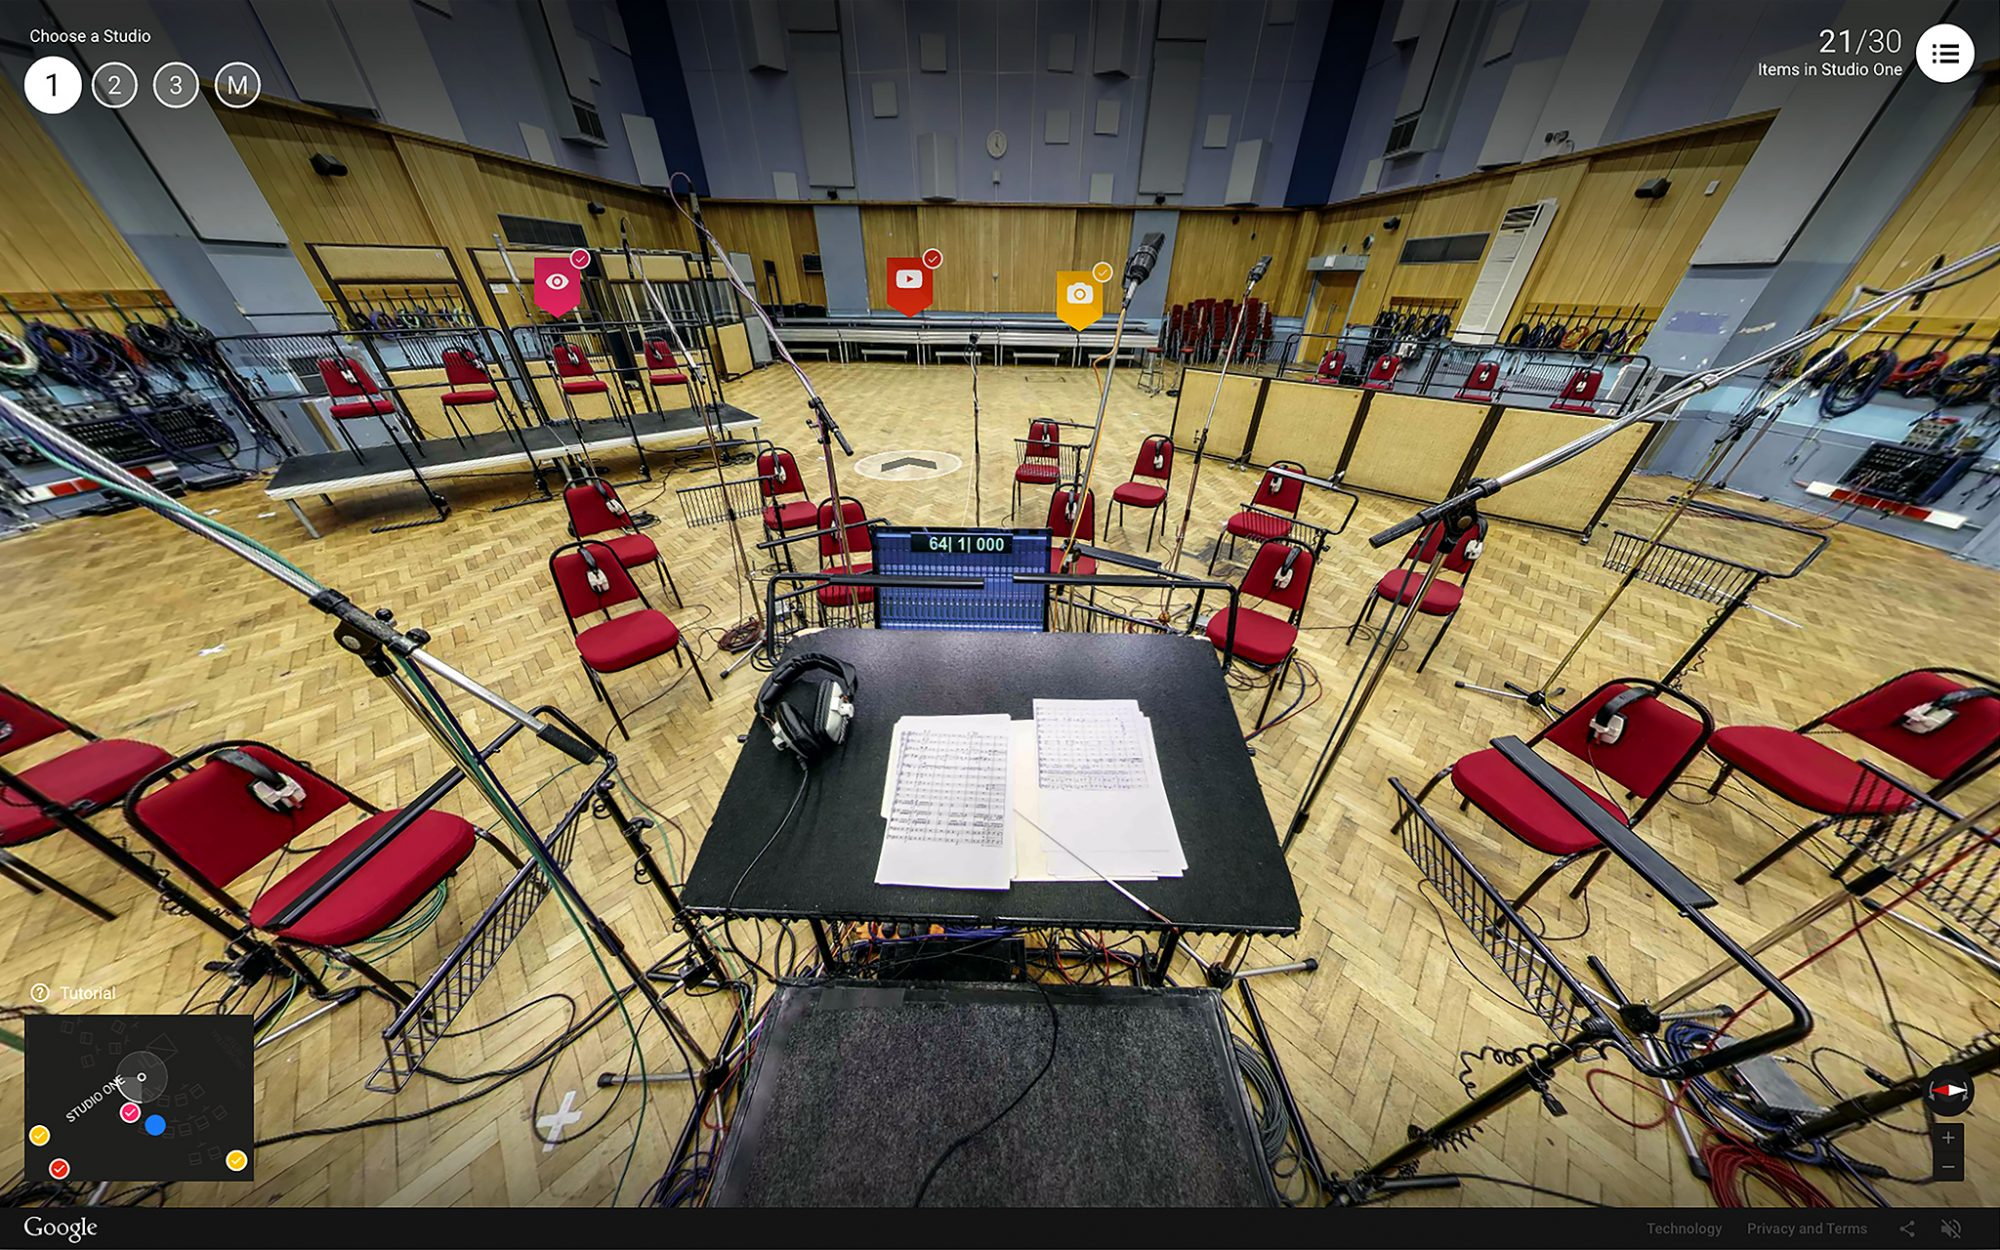 Inside Abbey Road Google